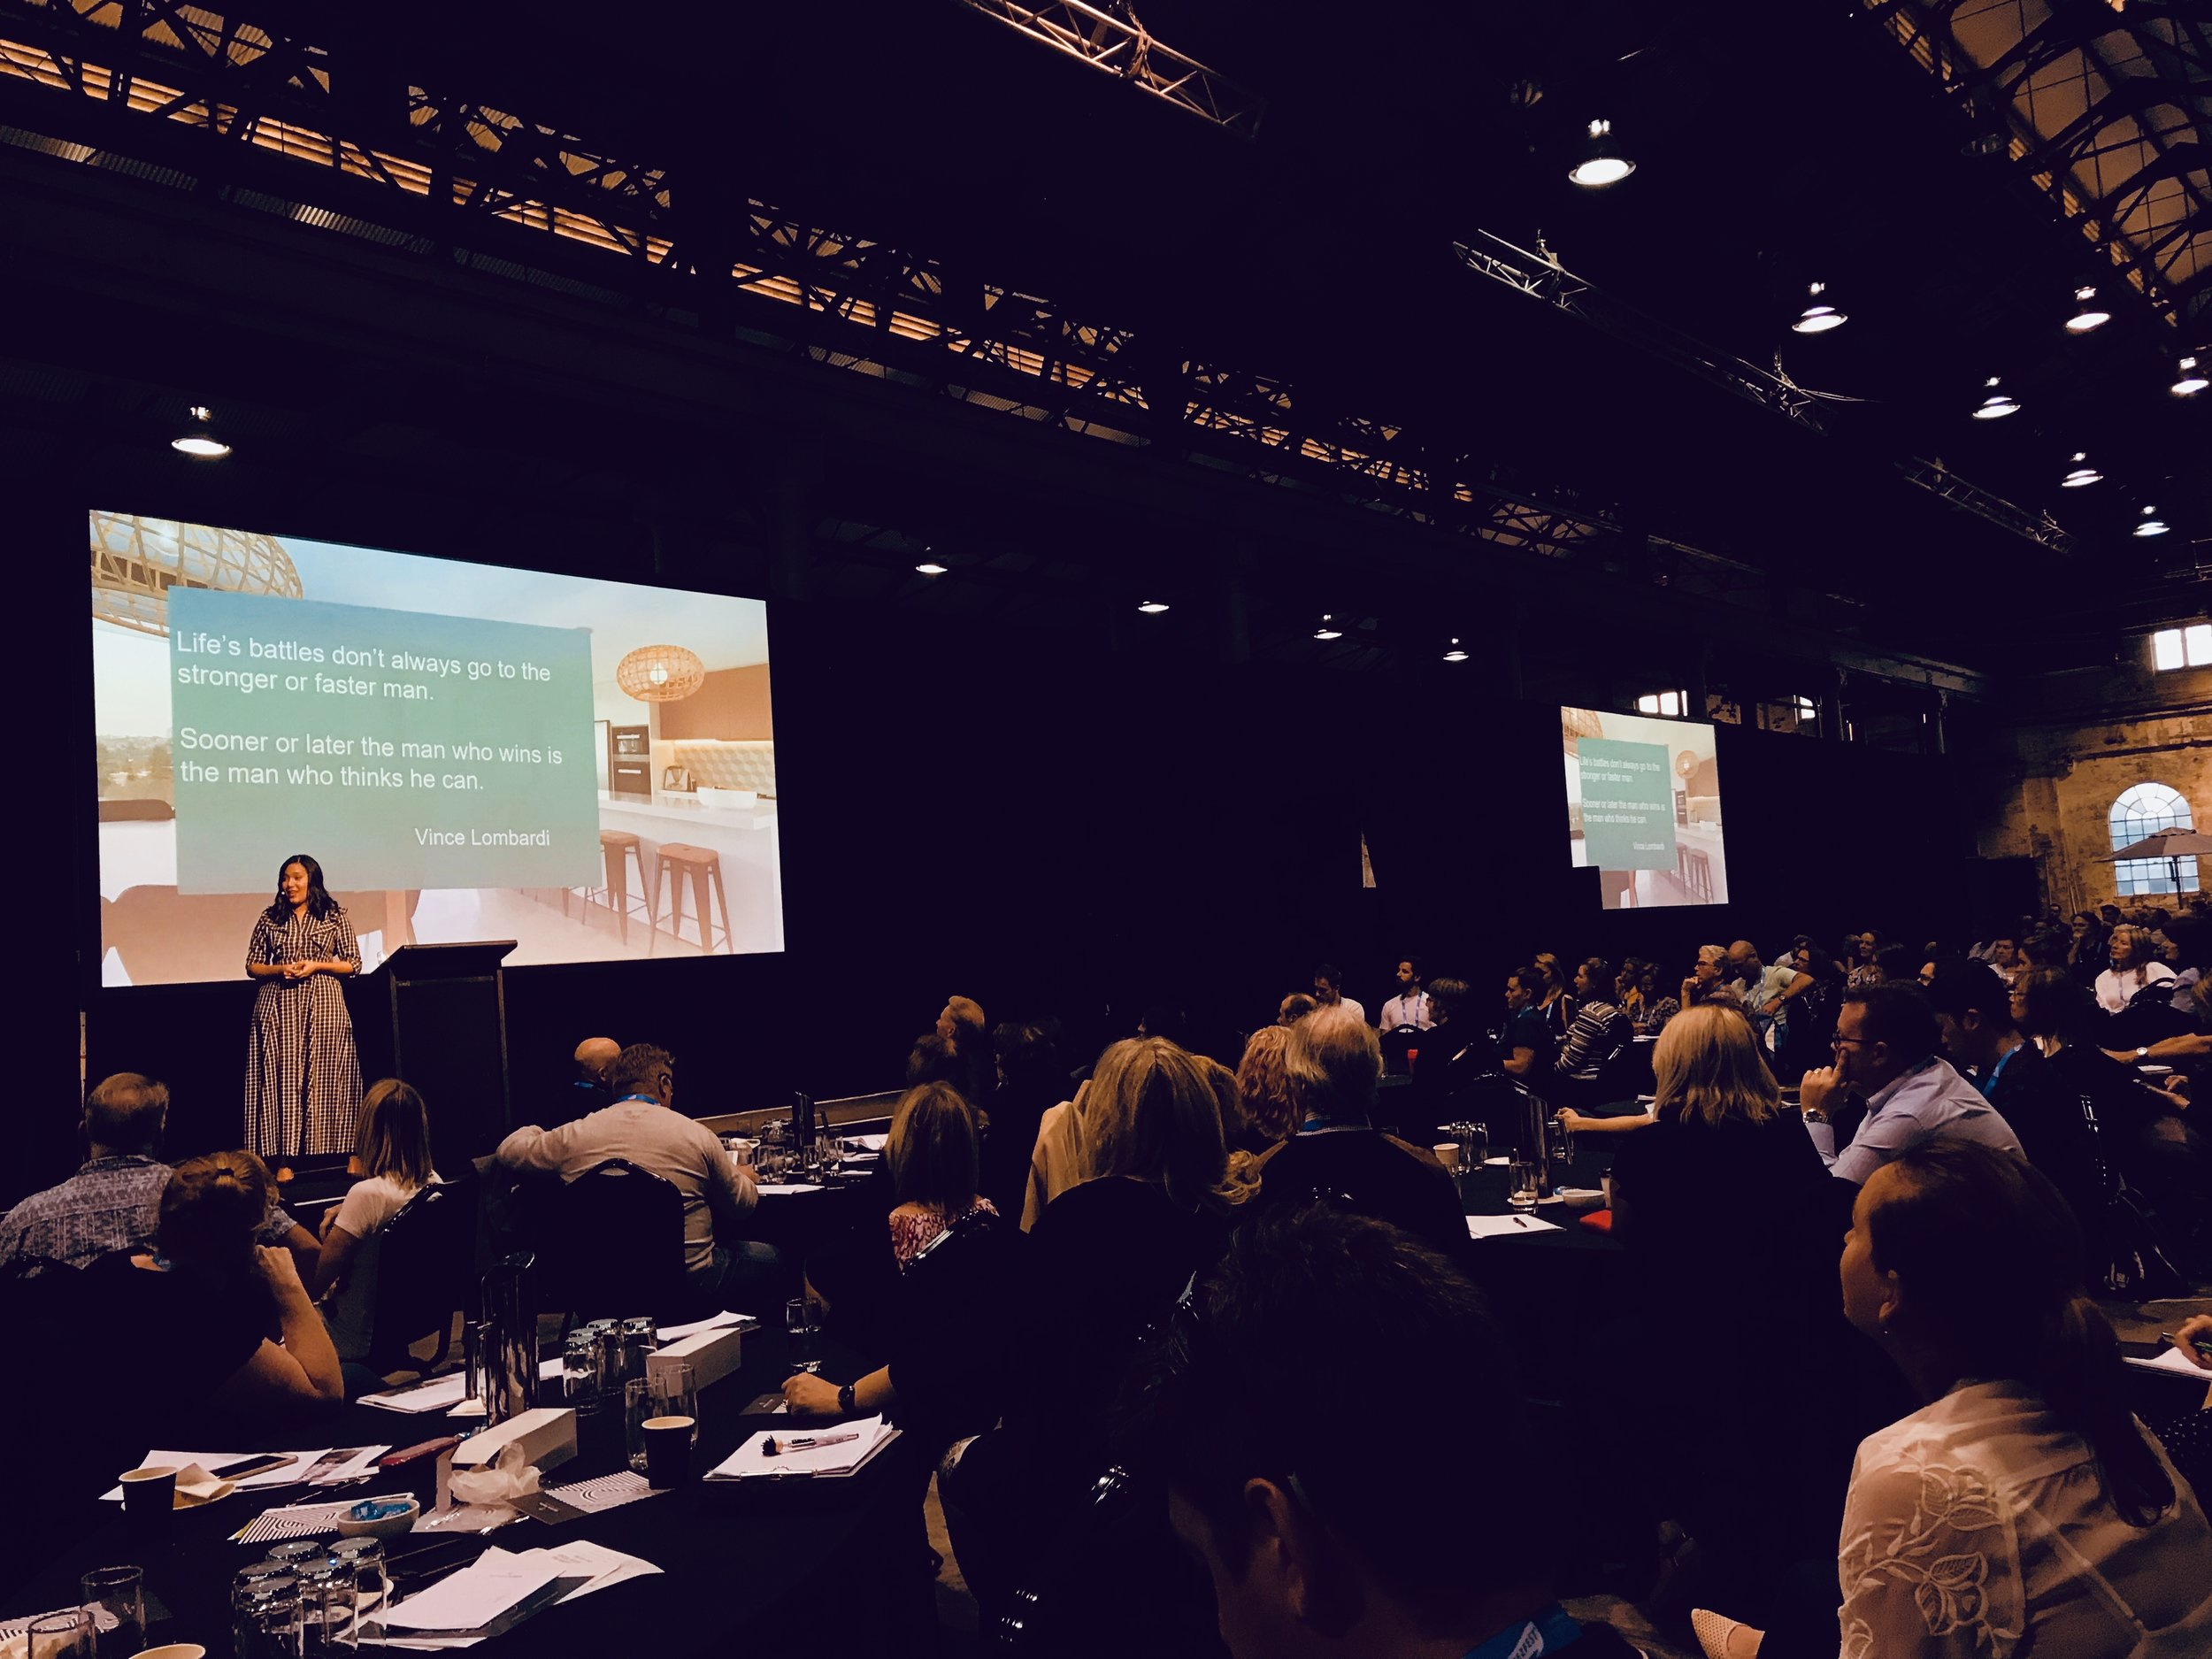 Sabrina presenting at the Short Term Rental Conference (over 500 attendees).